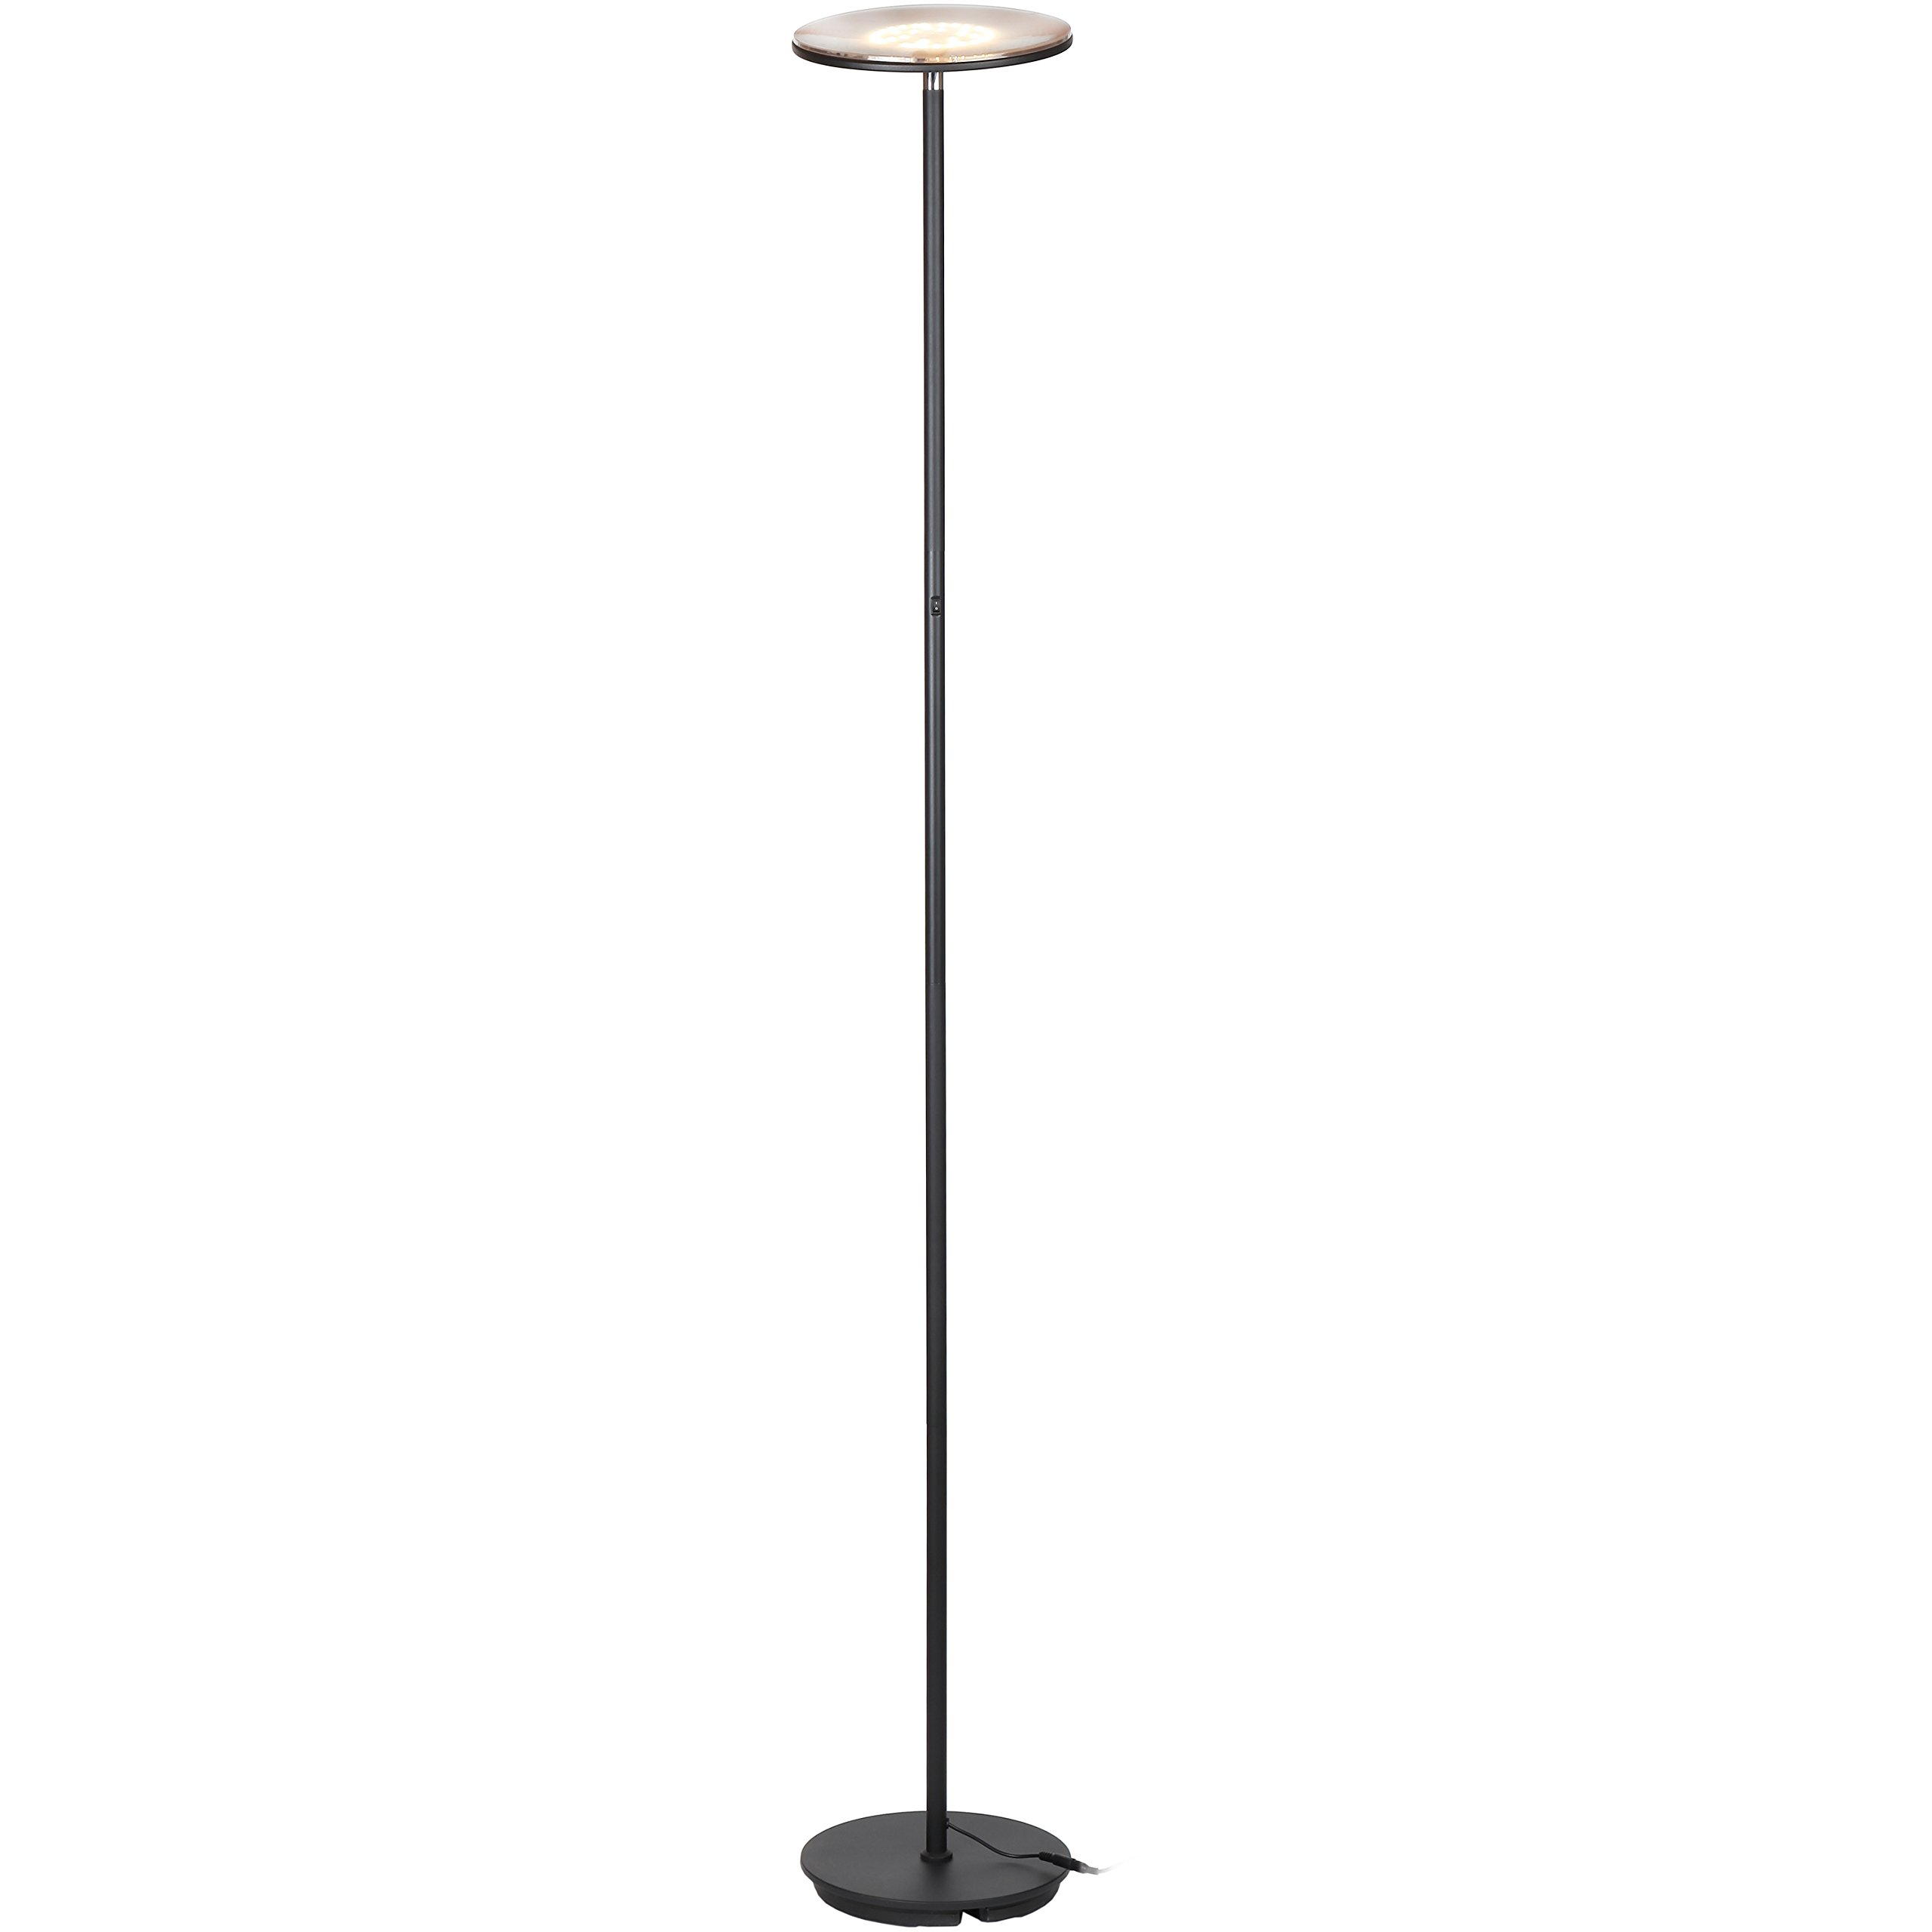 Brightech Kuler Sky Color Changing Torchiere LED Floor Lamp - Dimmable, iOs & Android App Remote Control Light - Lamp for Living Rooms, Game Rooms & Bedrooms - Adjustable Pivoting Head - Black by Brightech (Image #4)